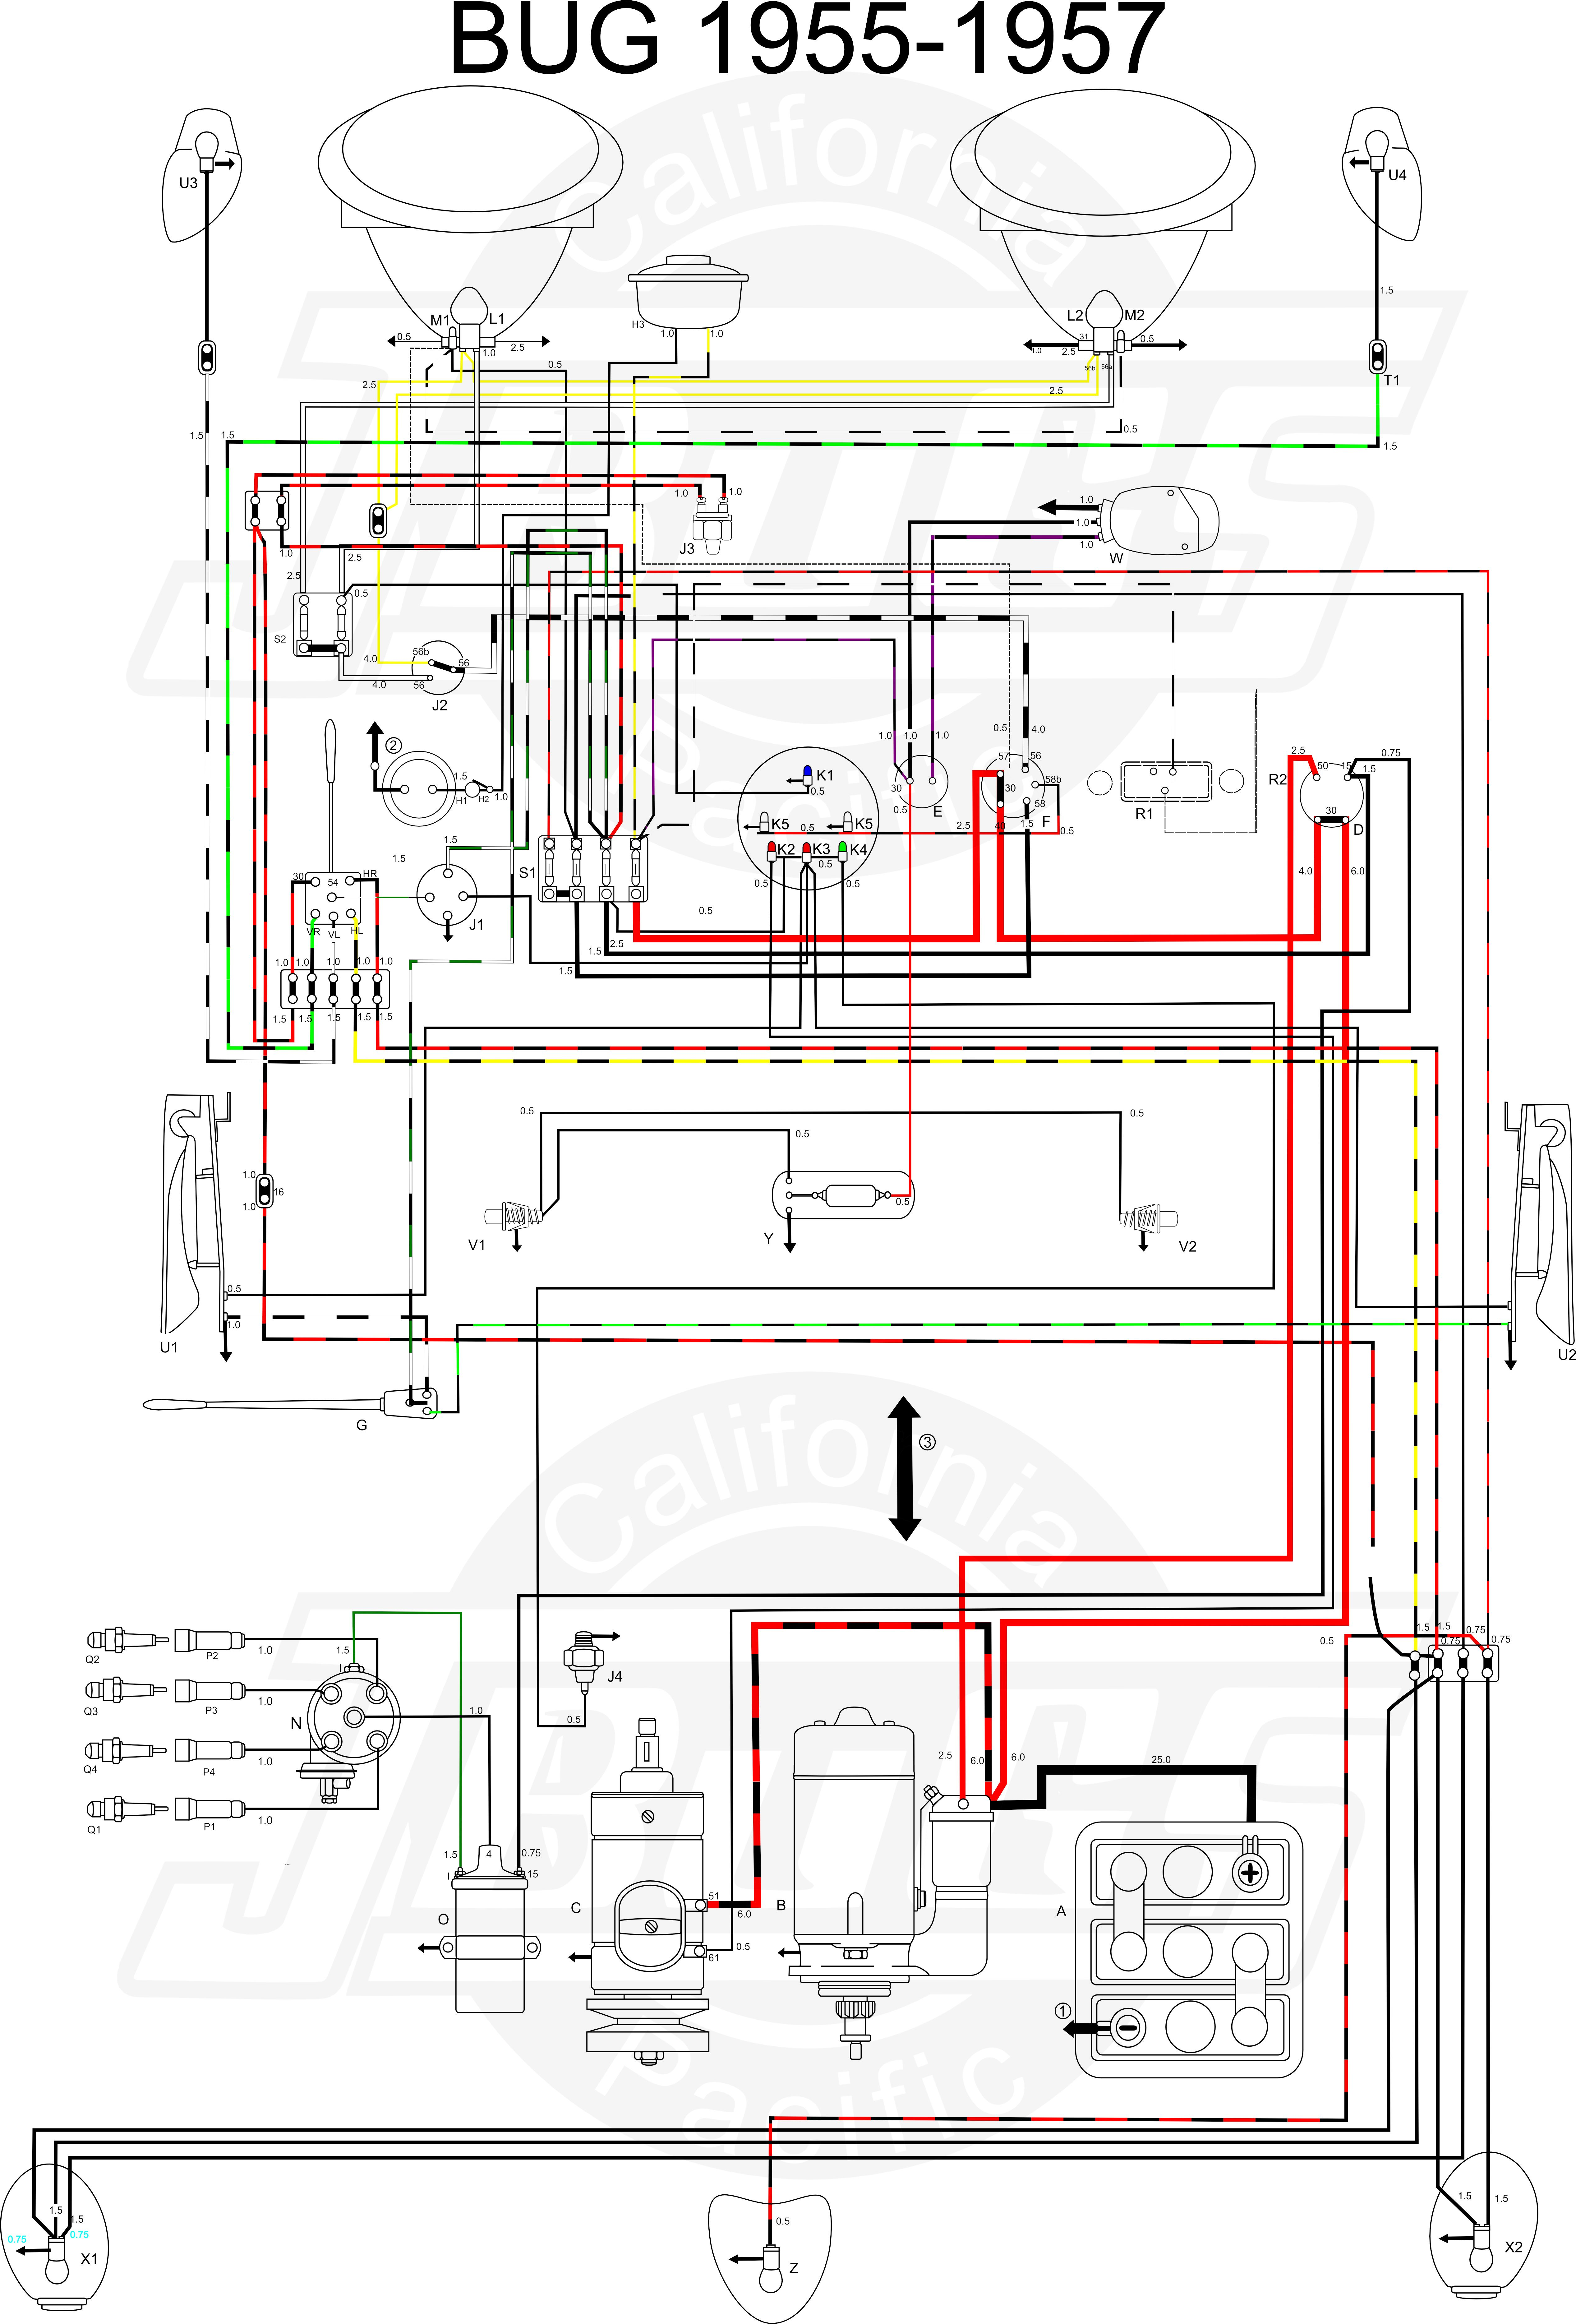 hight resolution of vw manx wiring diagrams wiring diagram for youmanx wiring diagram basic 15